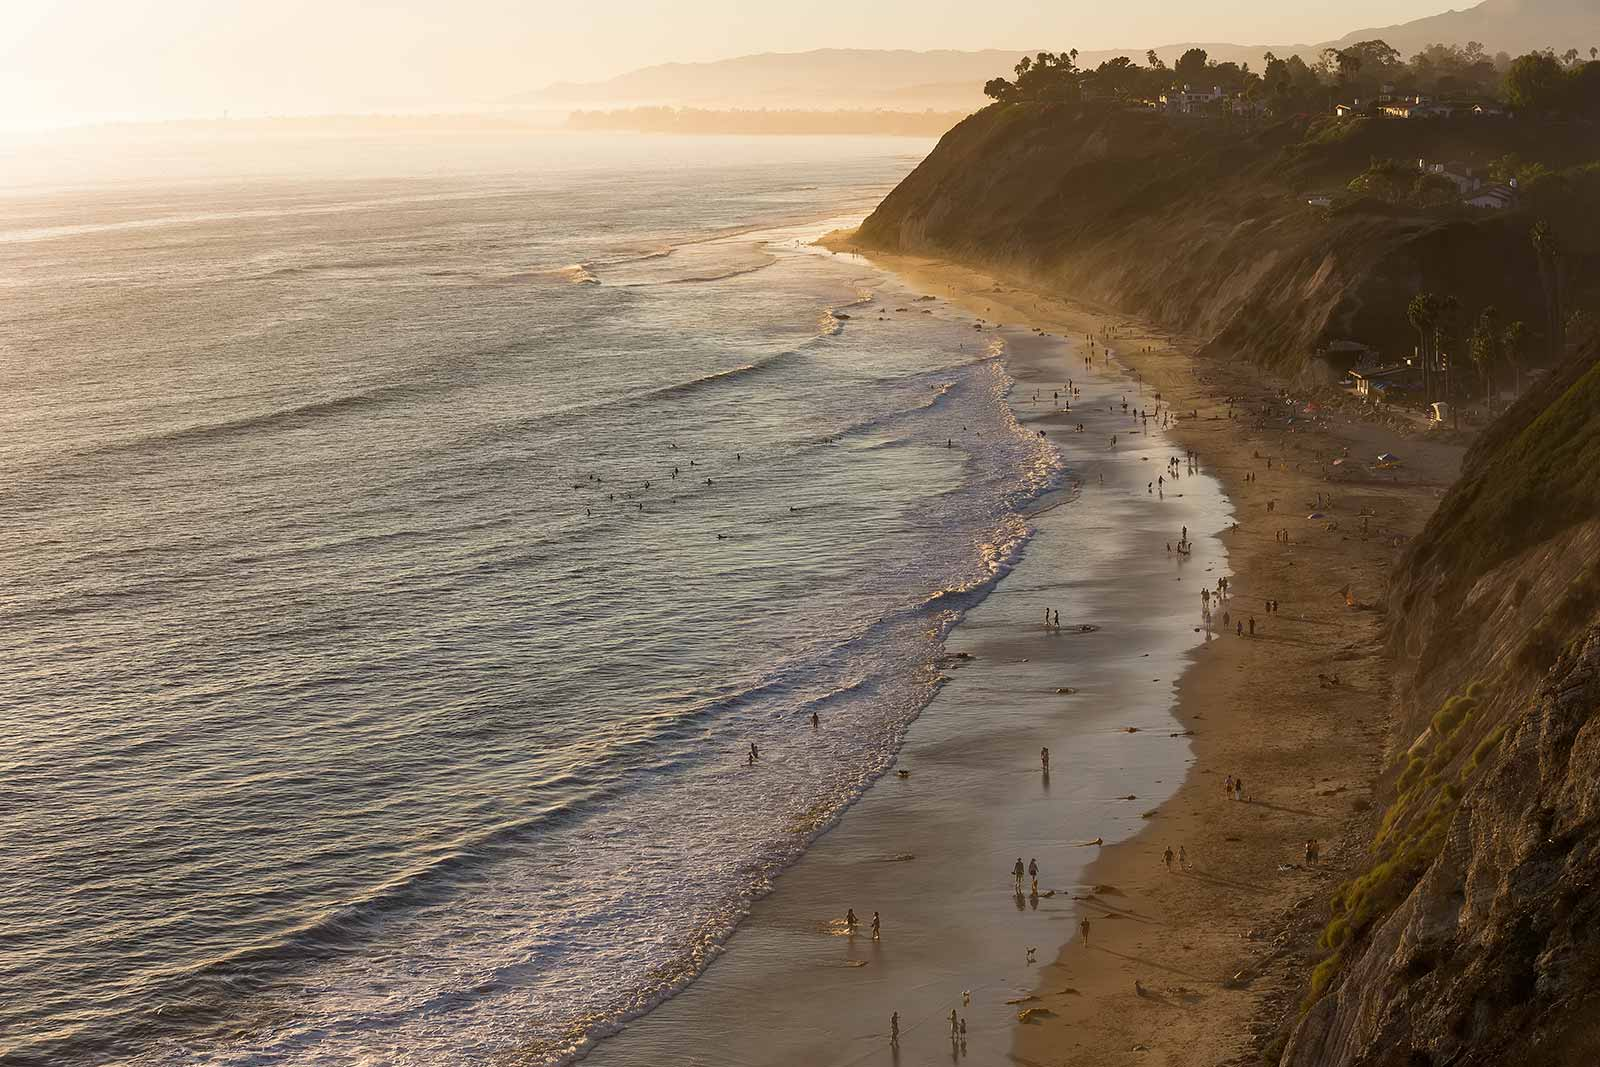 Santa Barbara has some amazing beached along the Central California coastline with a Mediterranean feel.